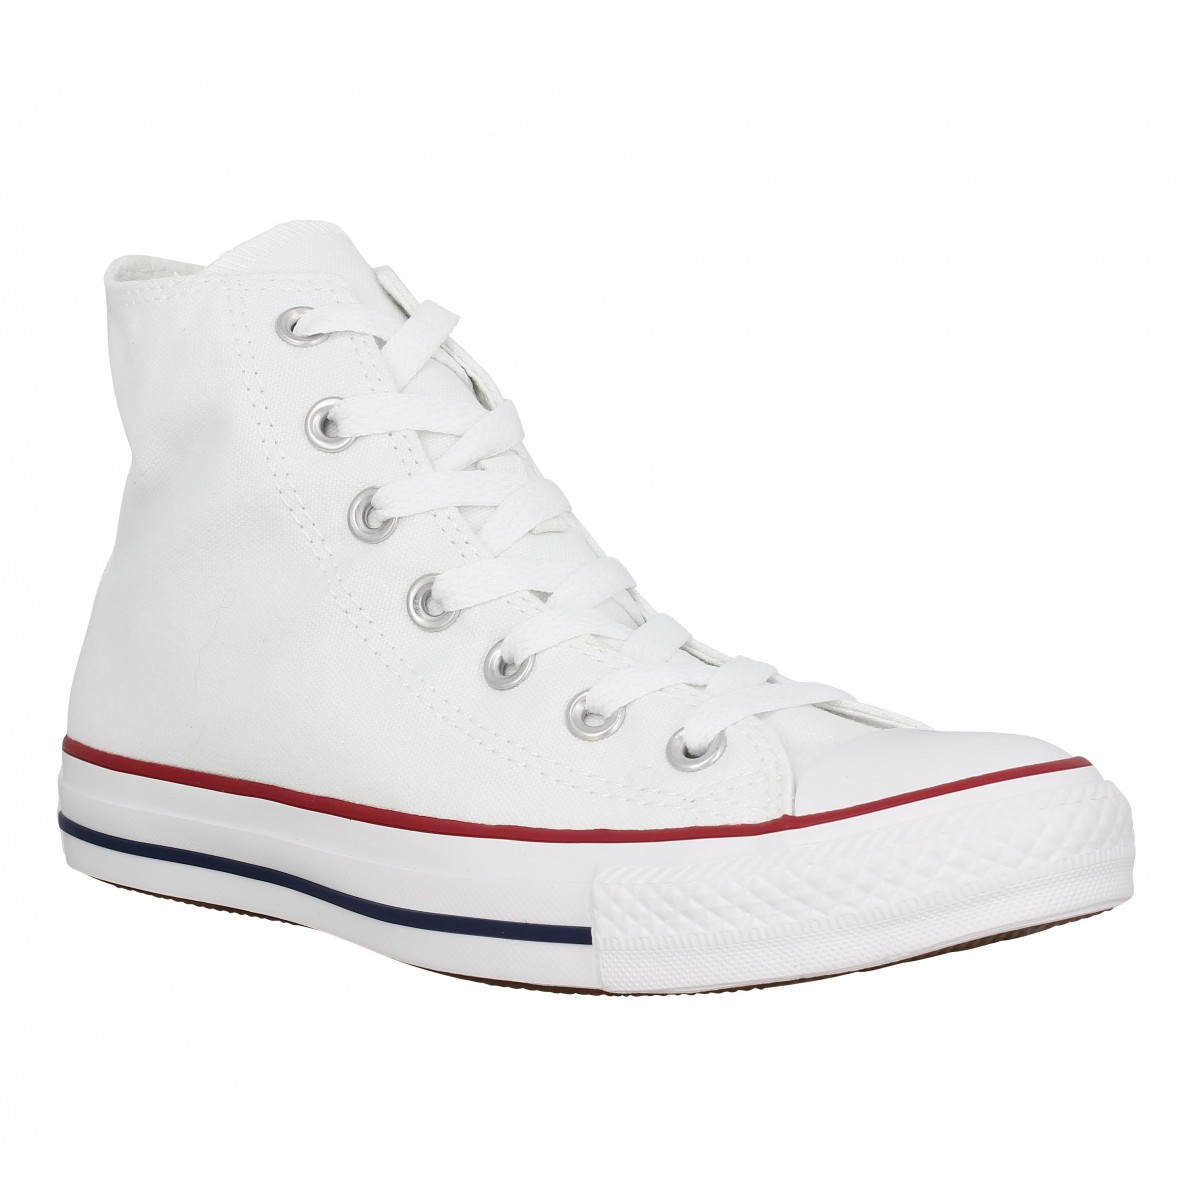 Baskets CONVERSE Chuck Taylor All Star Hi toile Femme Blanc